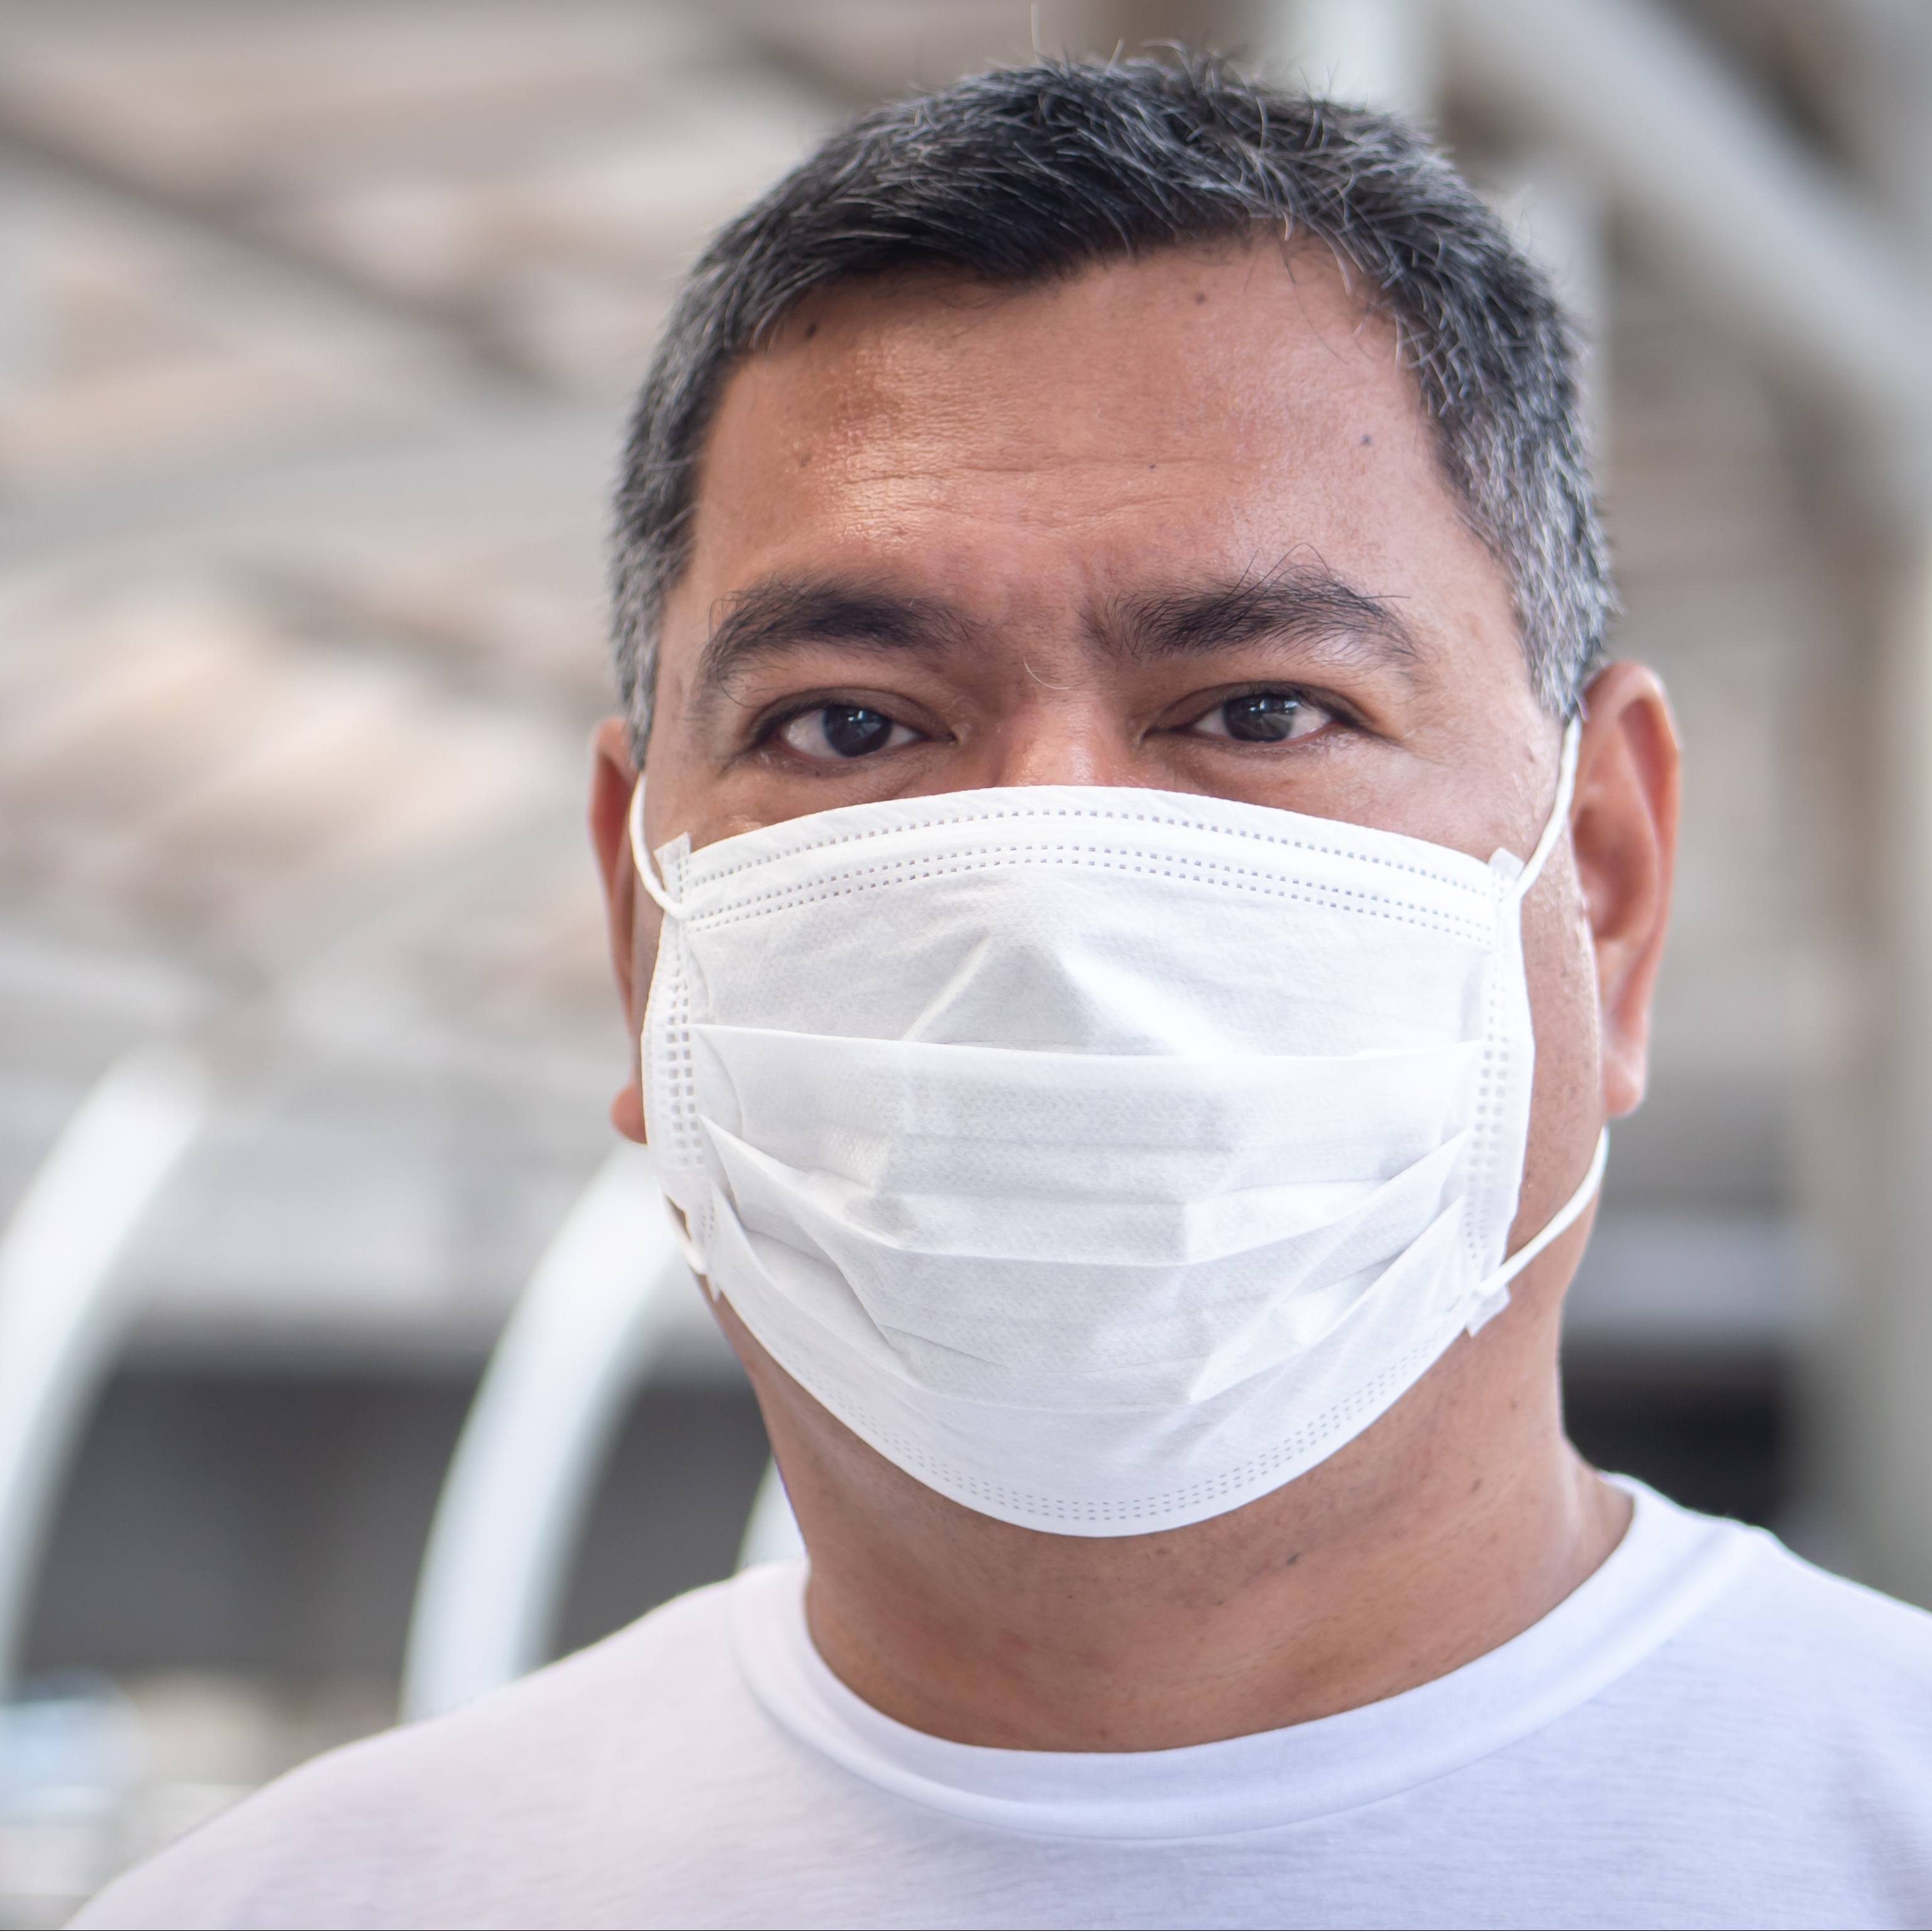 a middle aged man, perhaps Latino, with black and gray hair and wearing a white mask